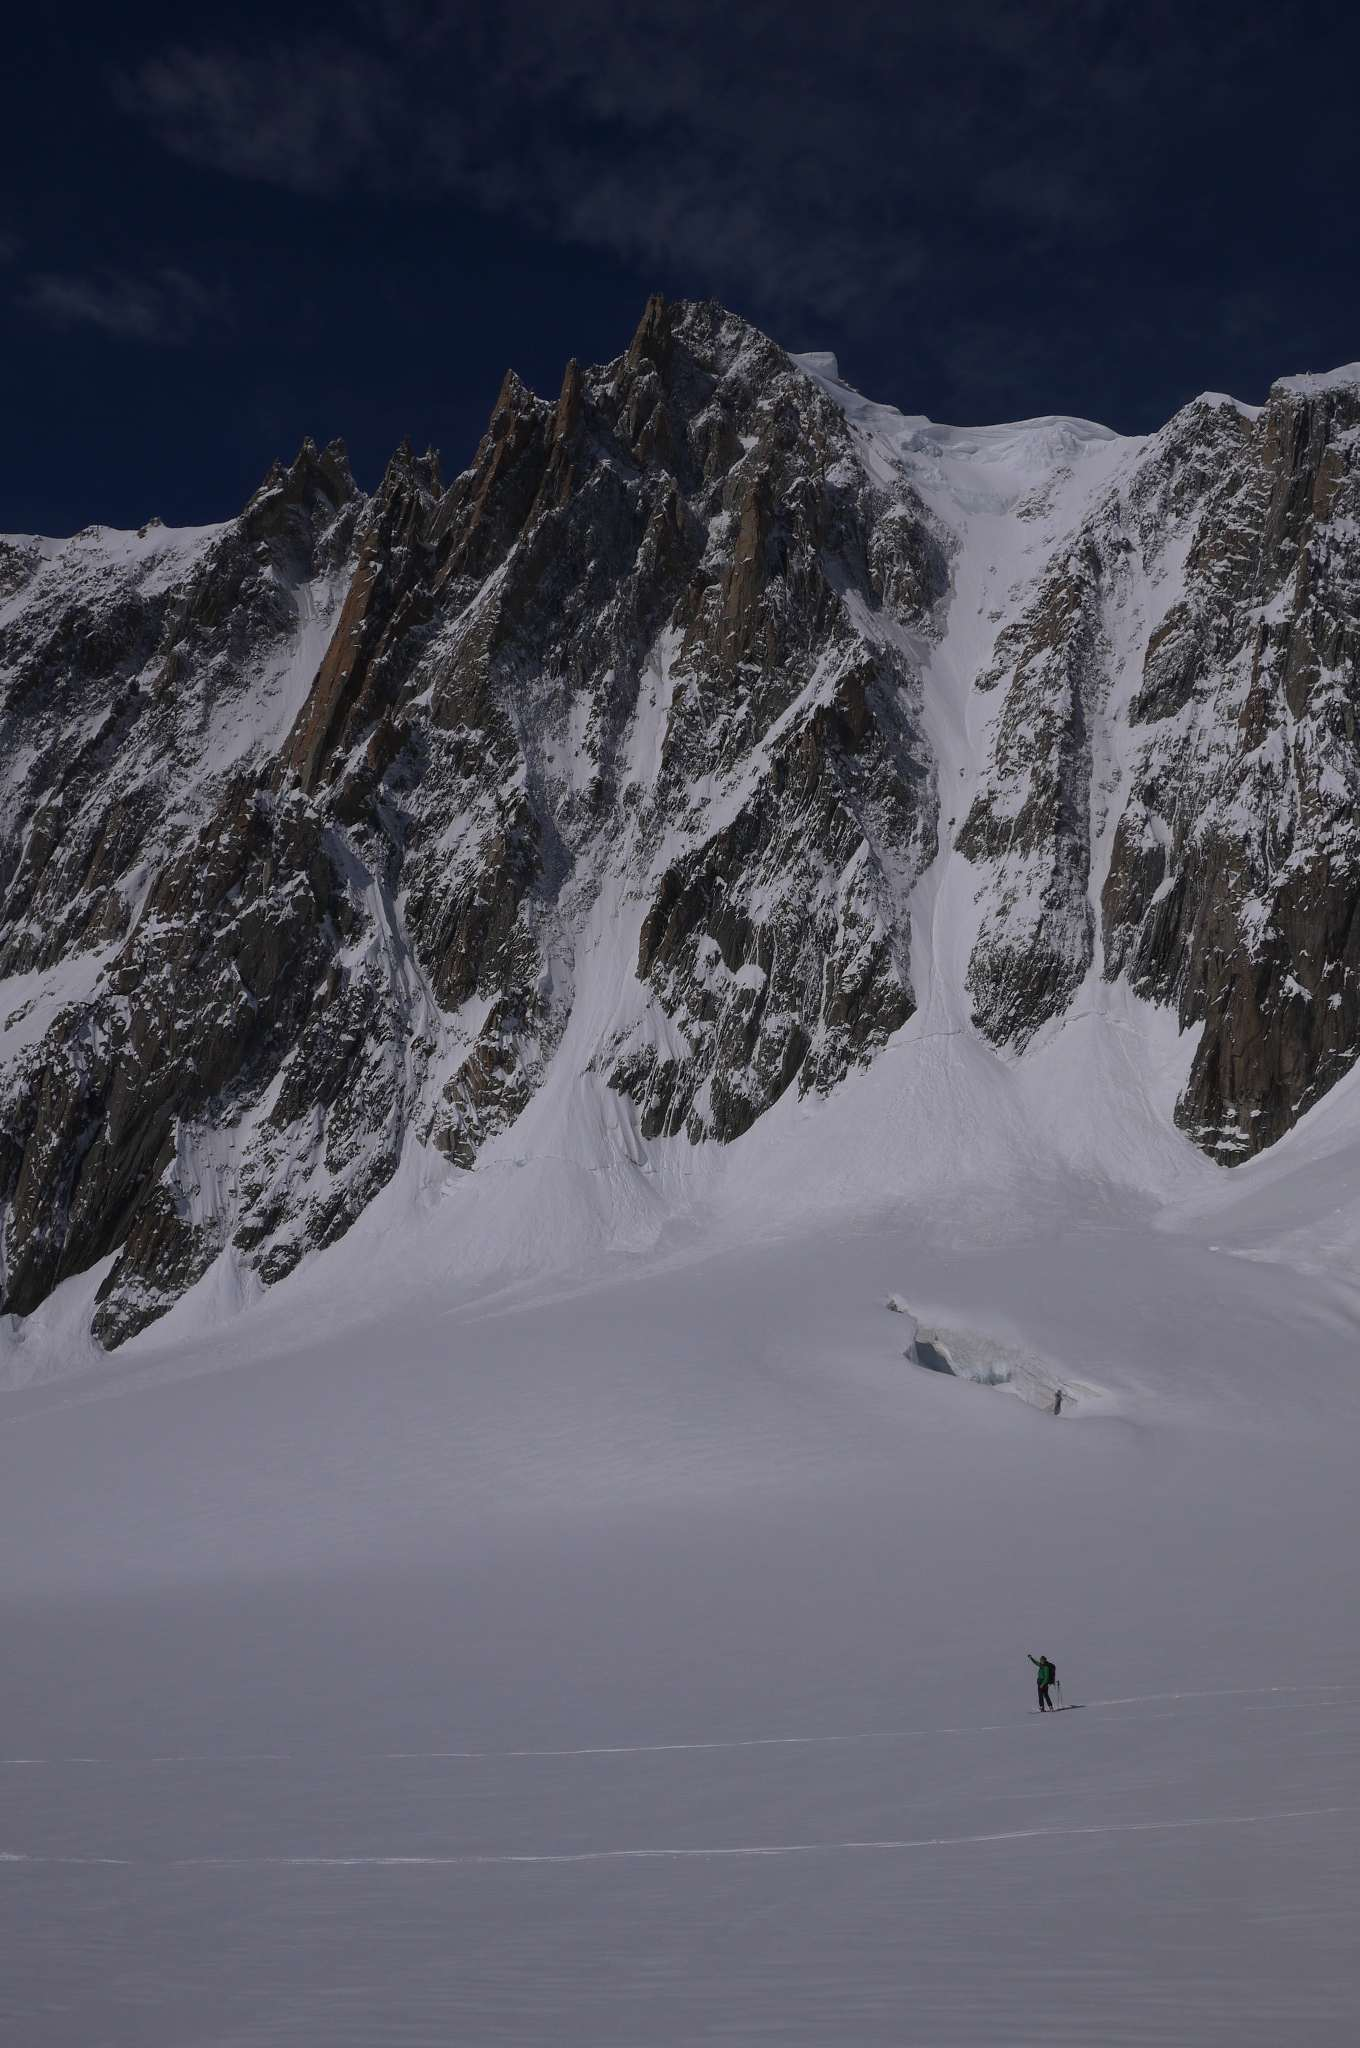 Skiing below the east face of Mont Blanc du Tacul